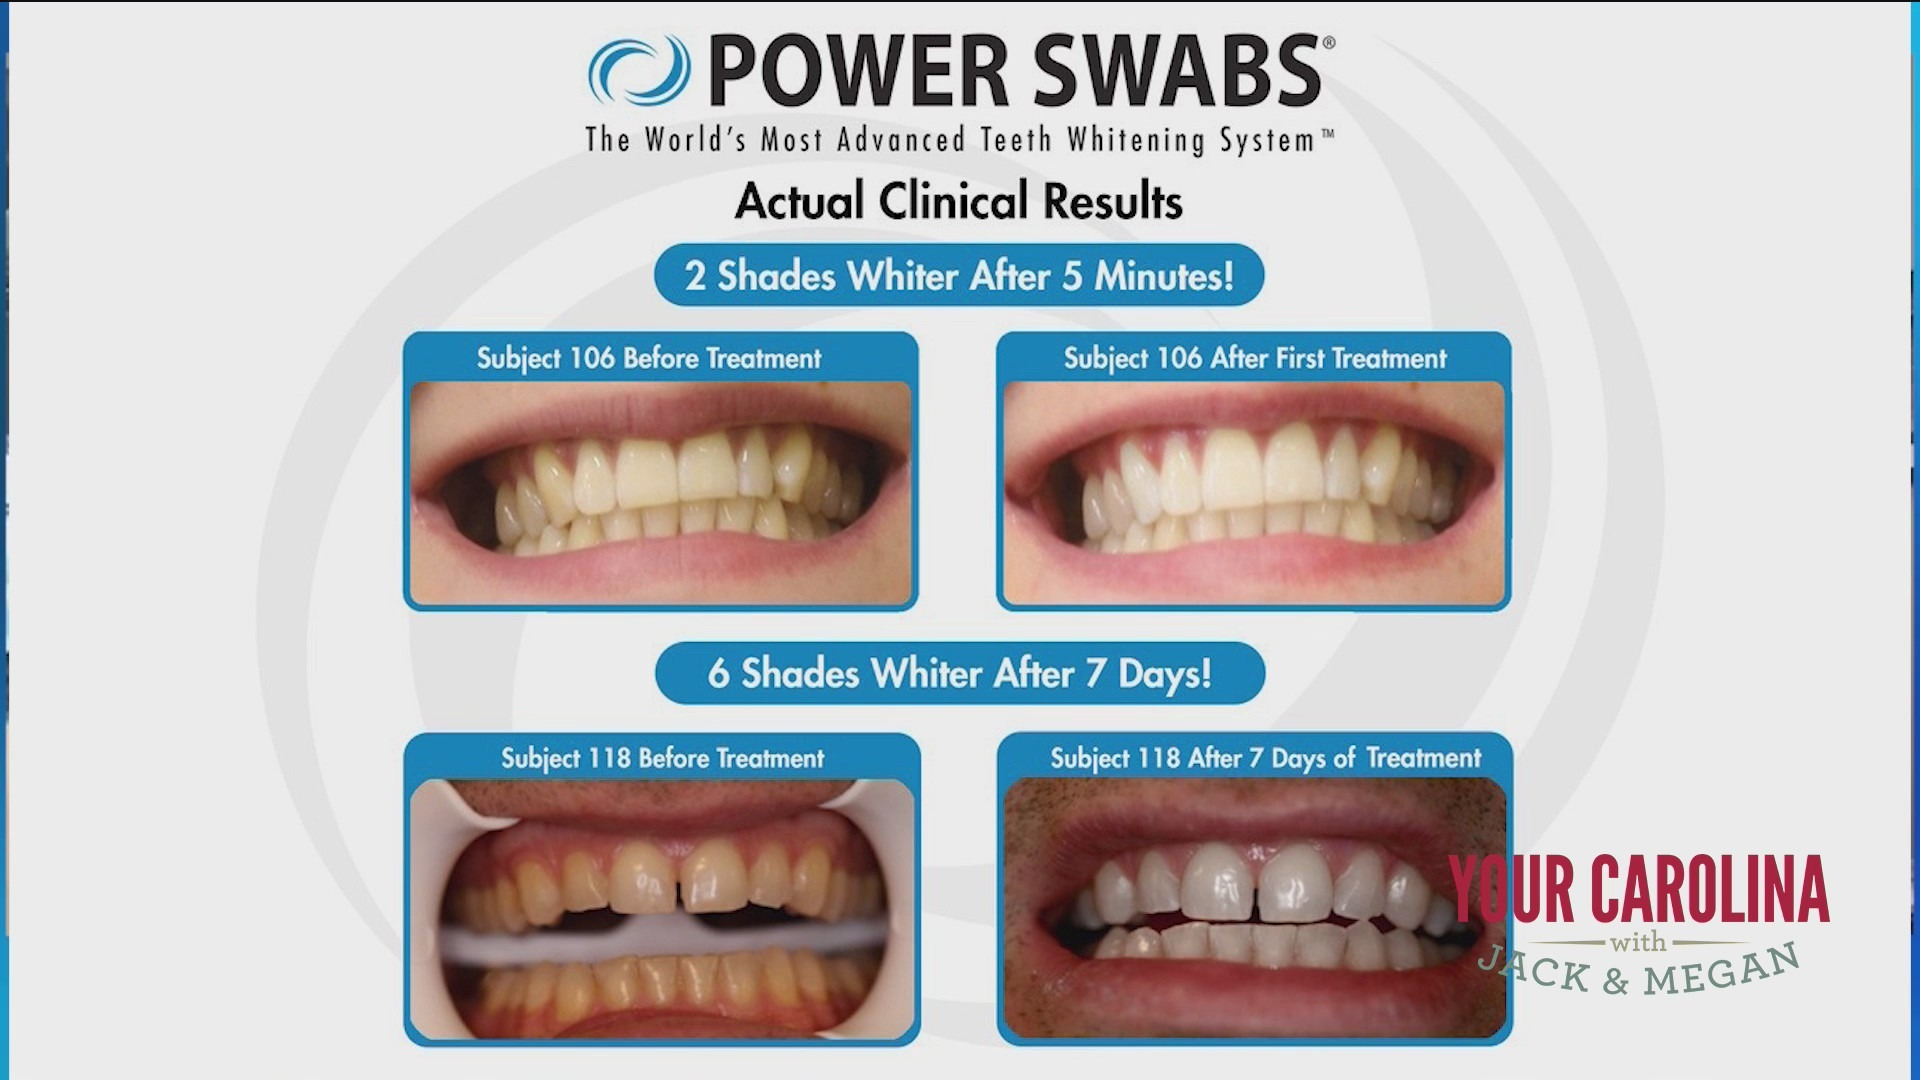 Whiter Teeth In 5 Minutes With Power Swabs